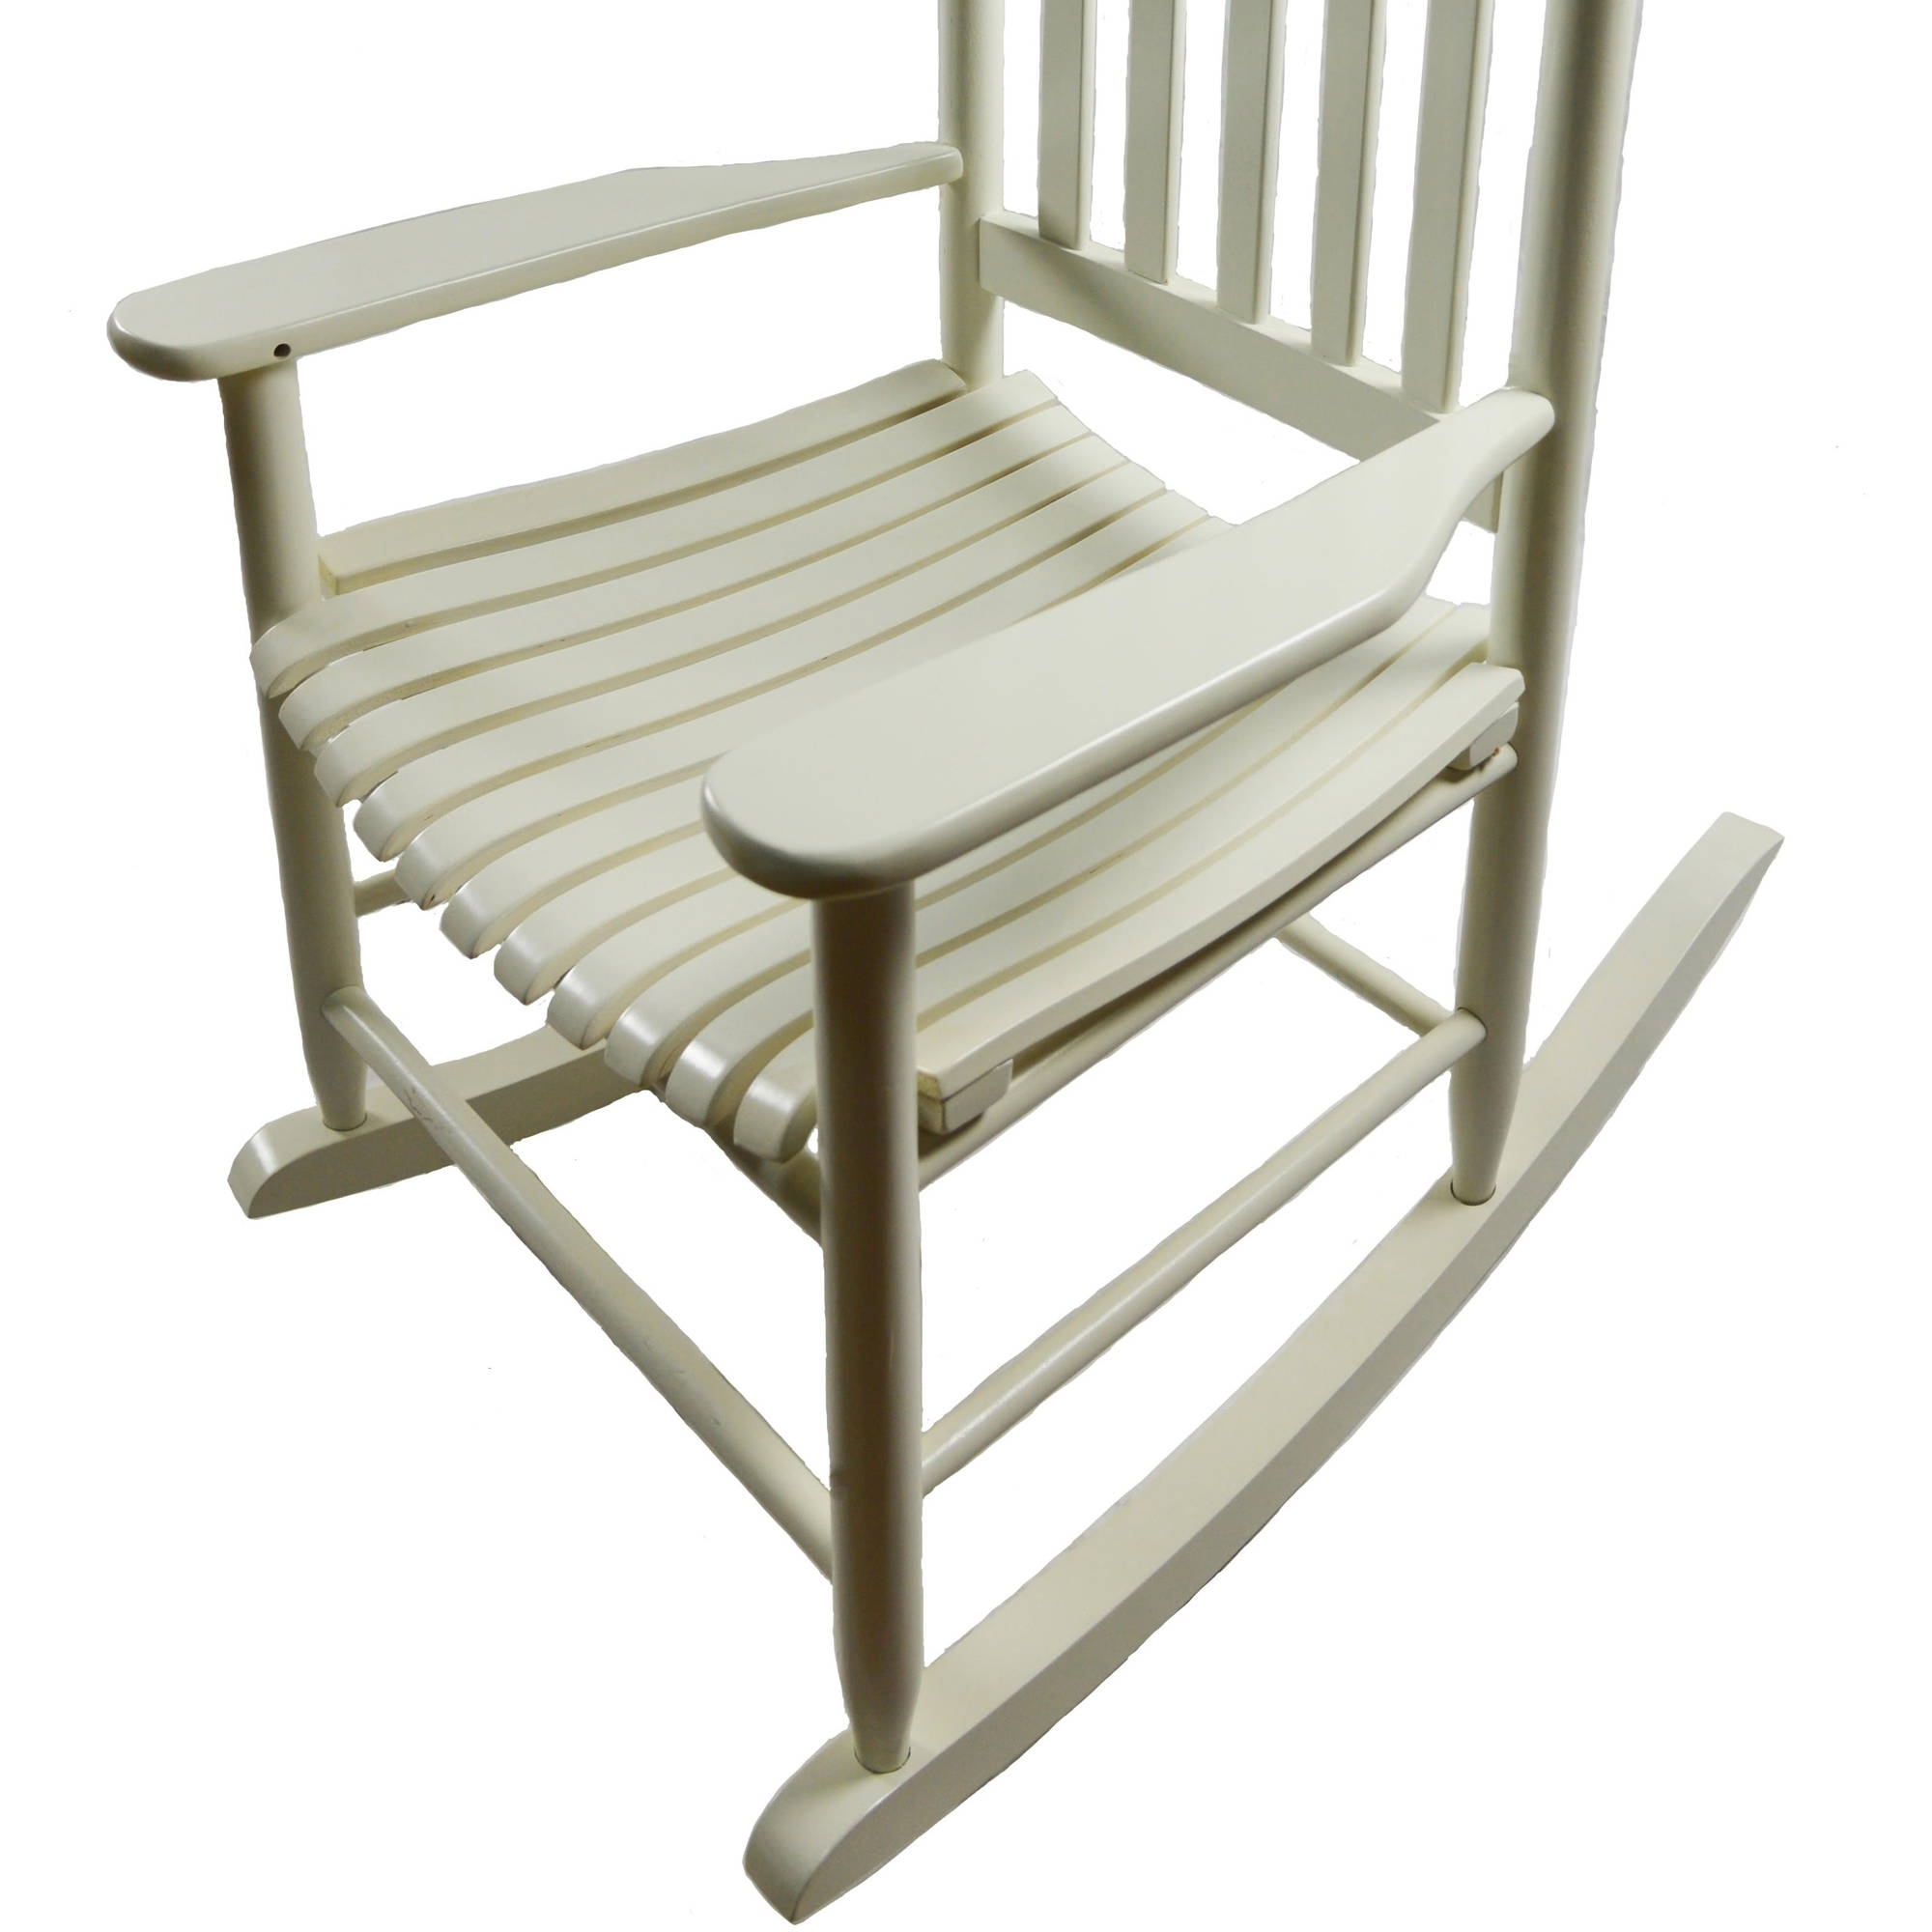 Best And Newest Mainstays Outdoor Wood Rocking Chair – Walmart Pertaining To Walmart Rocking Chairs (View 2 of 15)